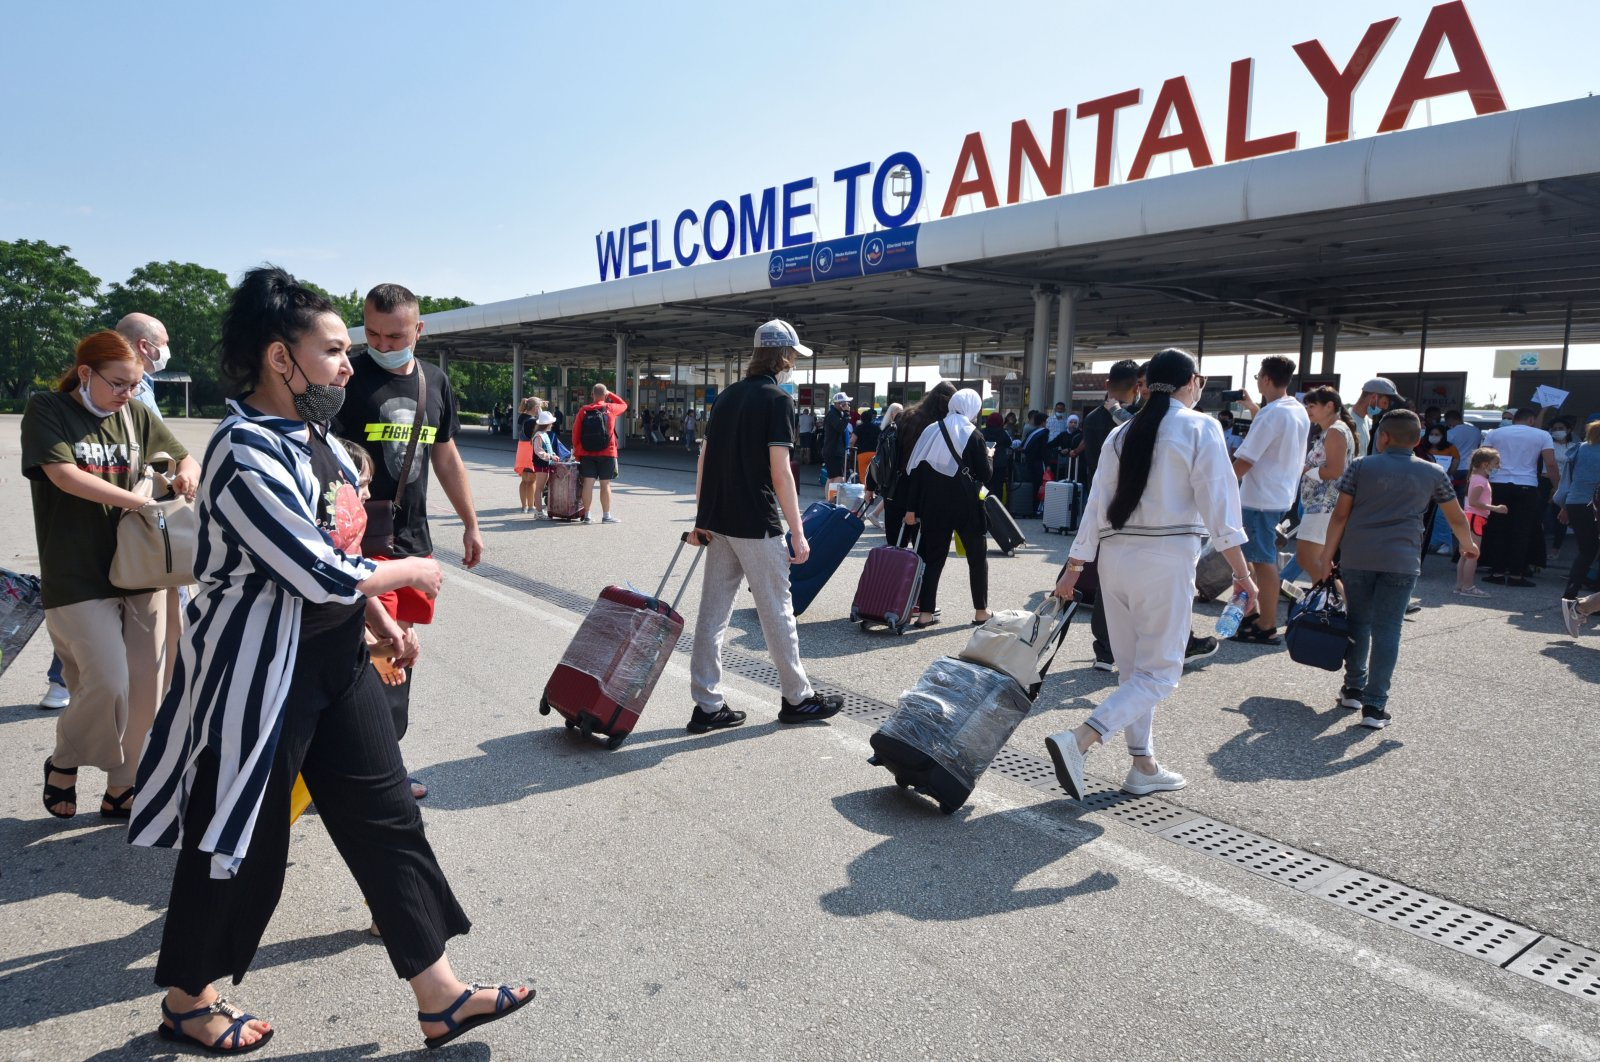 Russian tourists exit the airport as they arrive in Antalya, southern Turkey, June 29, 2021. (IHA Photo)